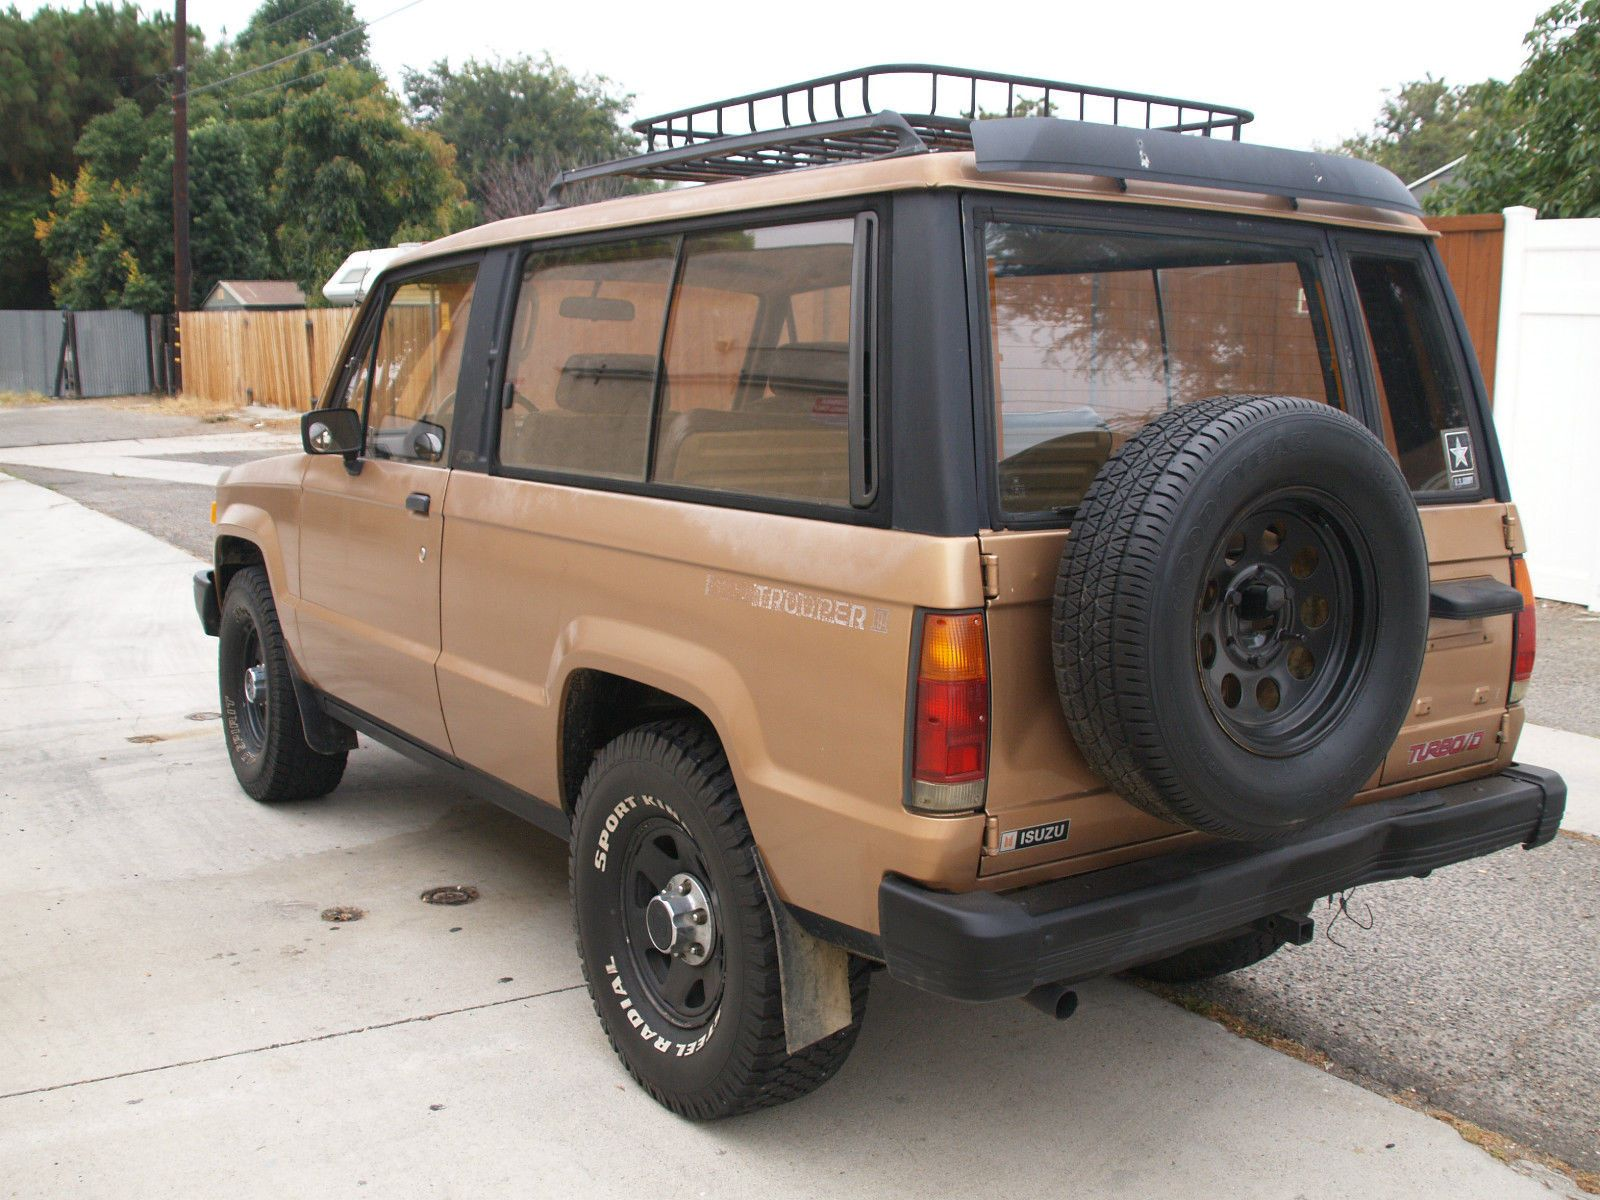 hight resolution of 1986 isuzu trooper dlx turbo diesel 4x4 2 door manual transmission turbo